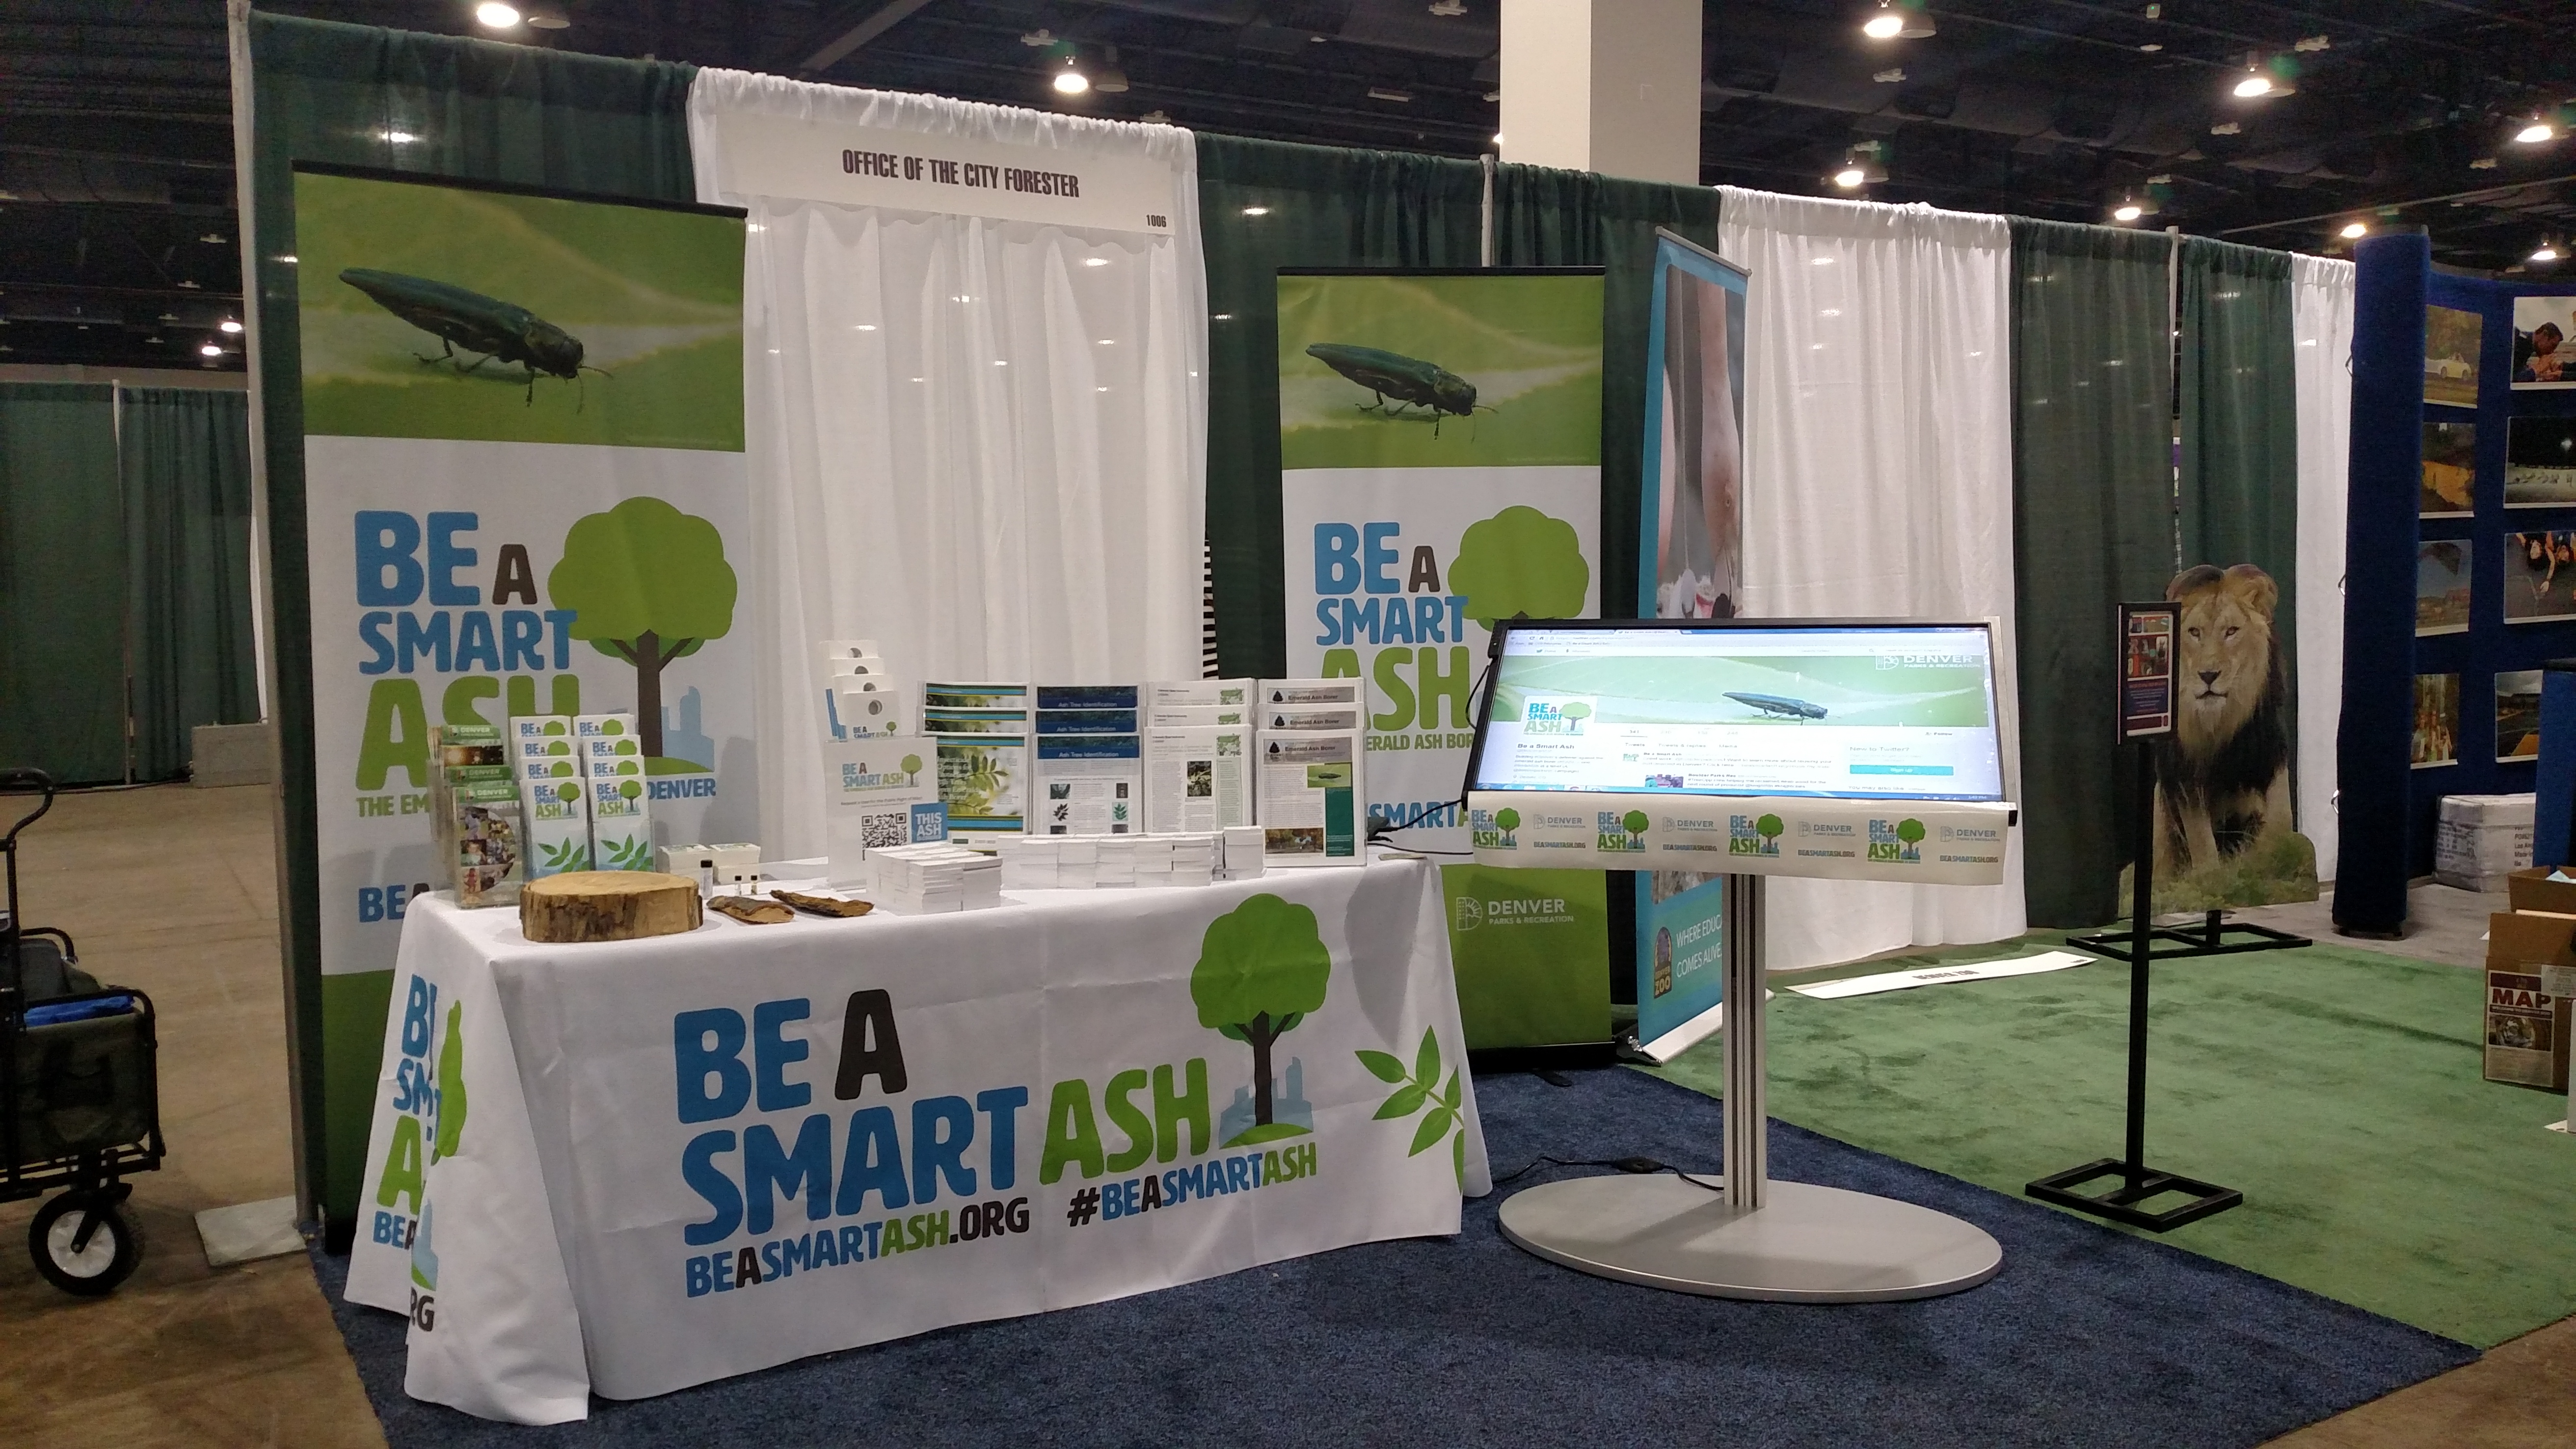 Stop By The Be A Smart Ash Booth At The Colorado Garden & Home Show From Feb. 4-12 At The Colorado Convention Center In Denver.